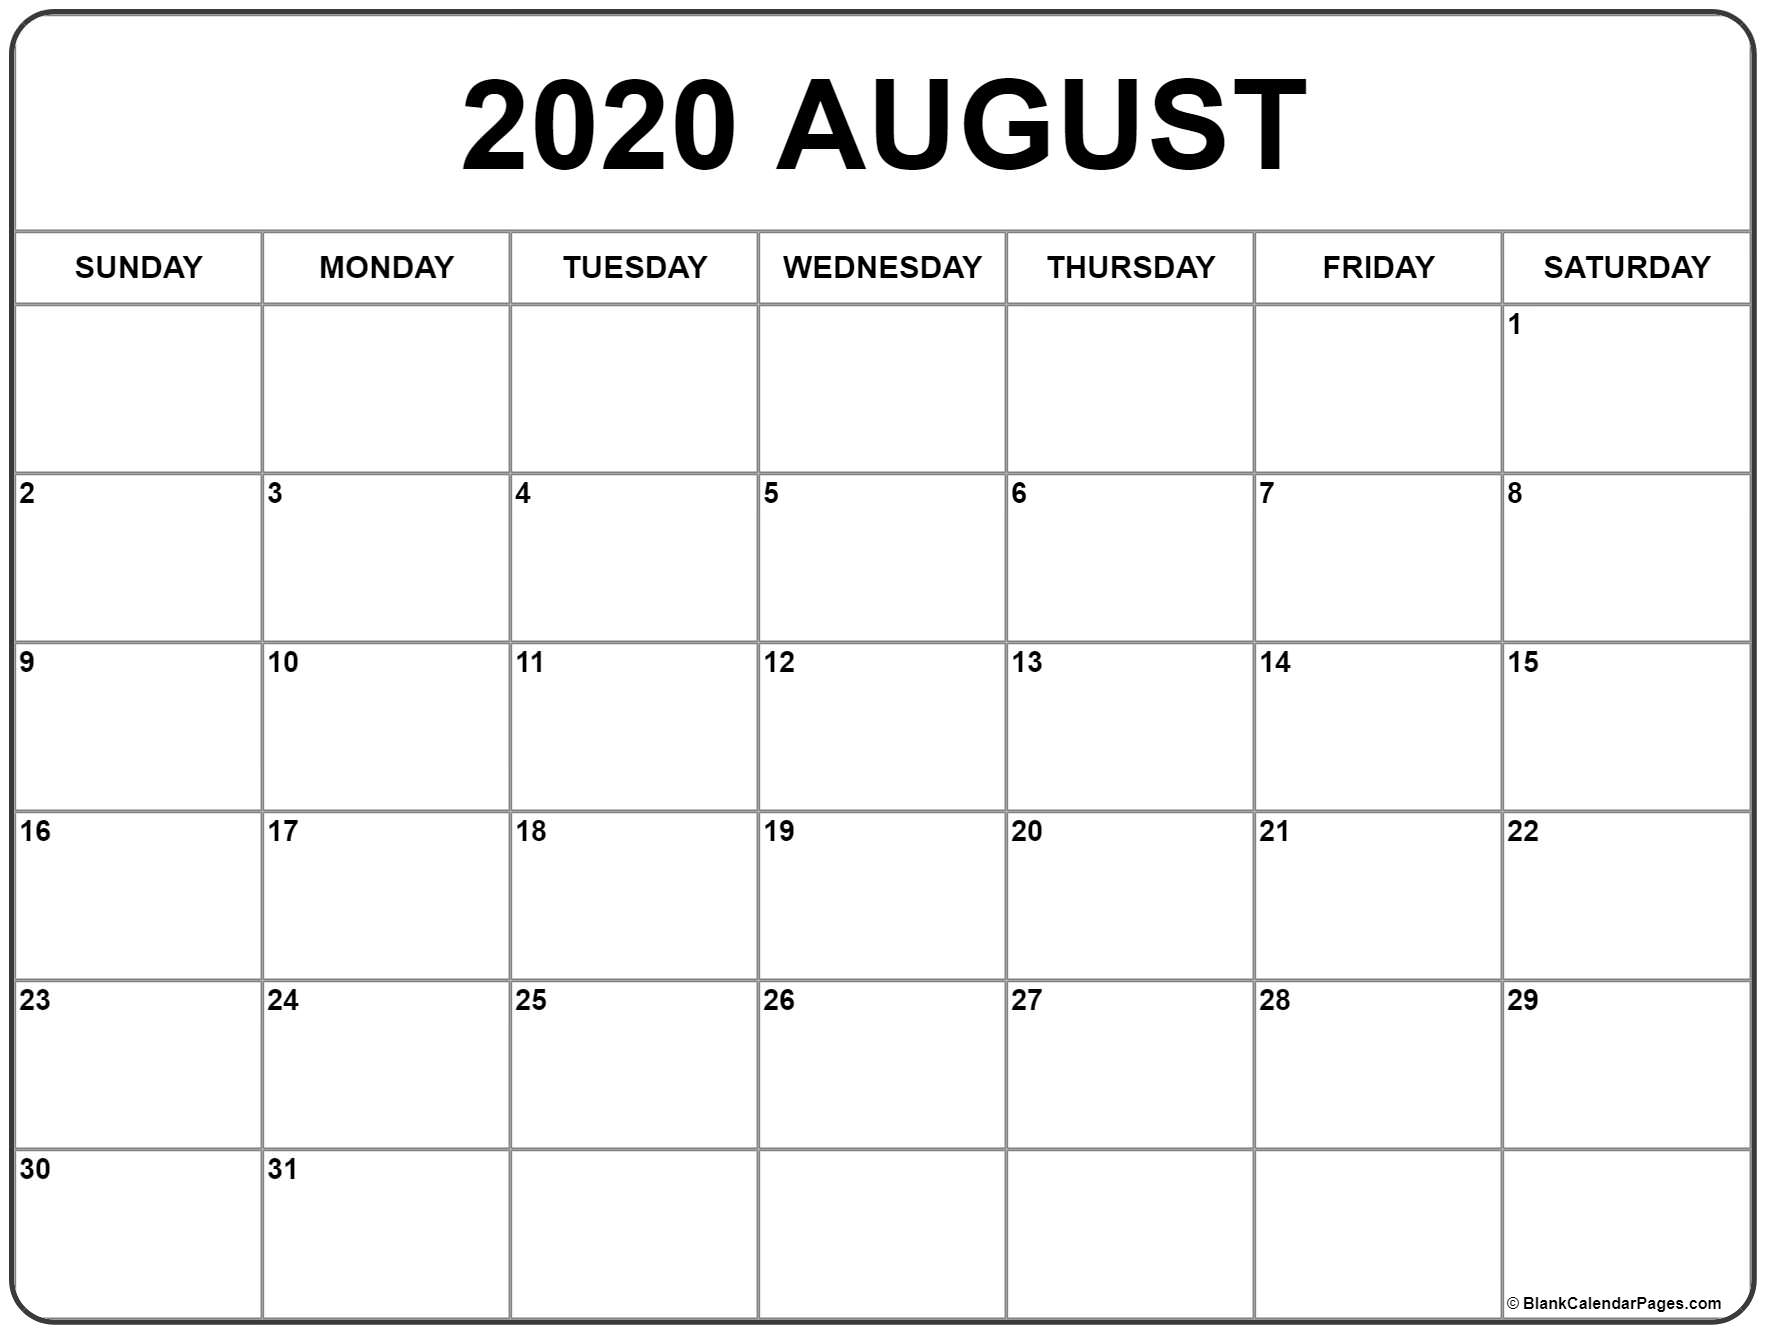 August 2020 Calendar | Free Printable Monthly Calendars in 2020 Monthly Calendar Monday Start Printable Free